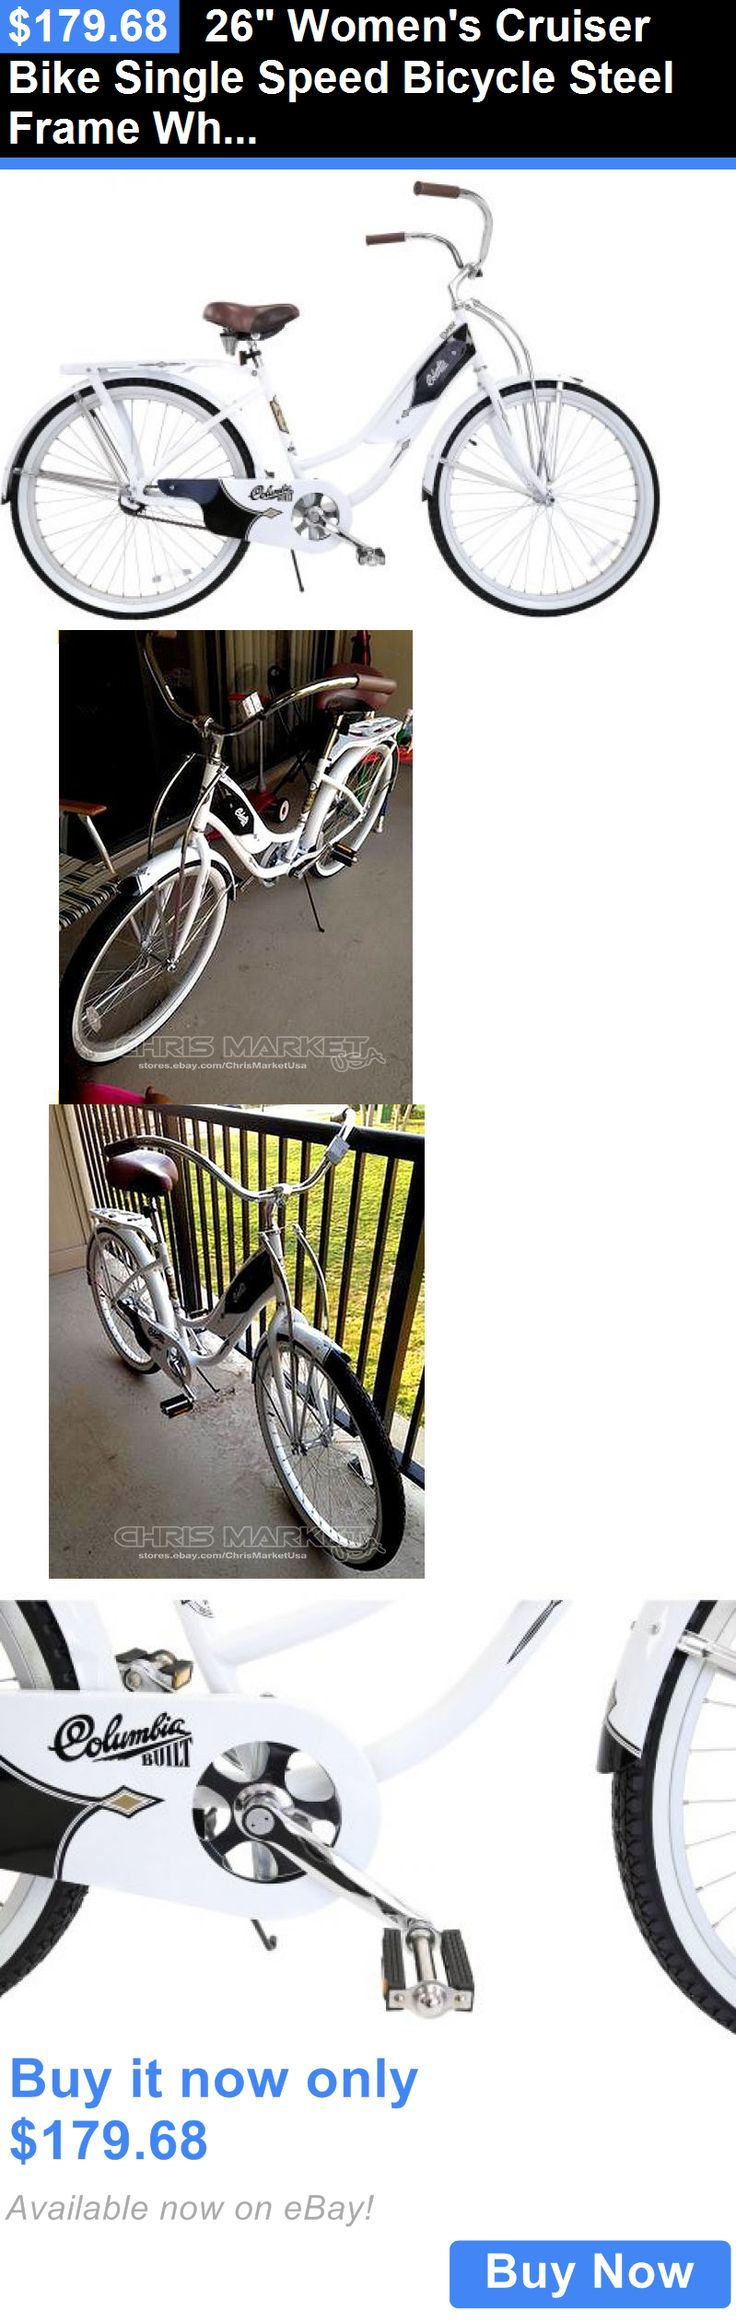 bicycles: 26 Womens Cruiser Bike Single Speed Bicycle Steel Frame White BUY IT NOW ONLY: $179.68